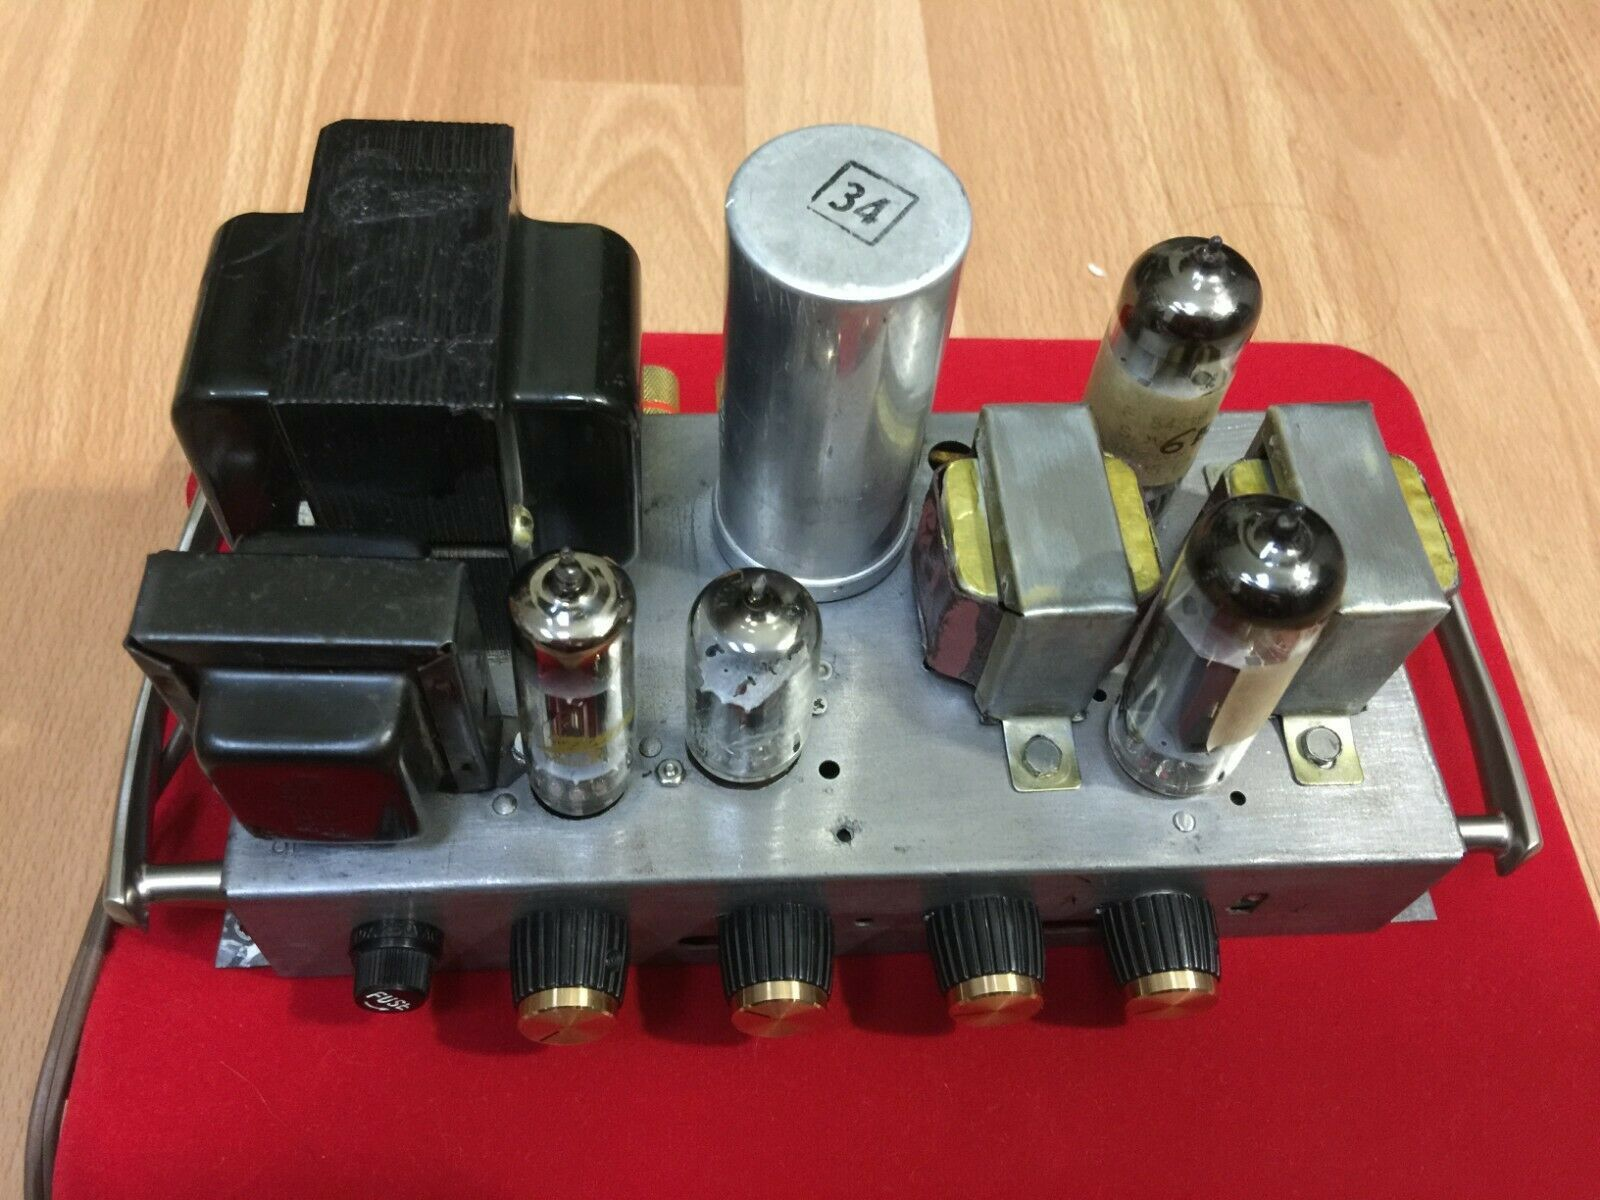 Vintage Stereo Zenith Tube Amplifier 6bq5 El84 Works Plug And Play